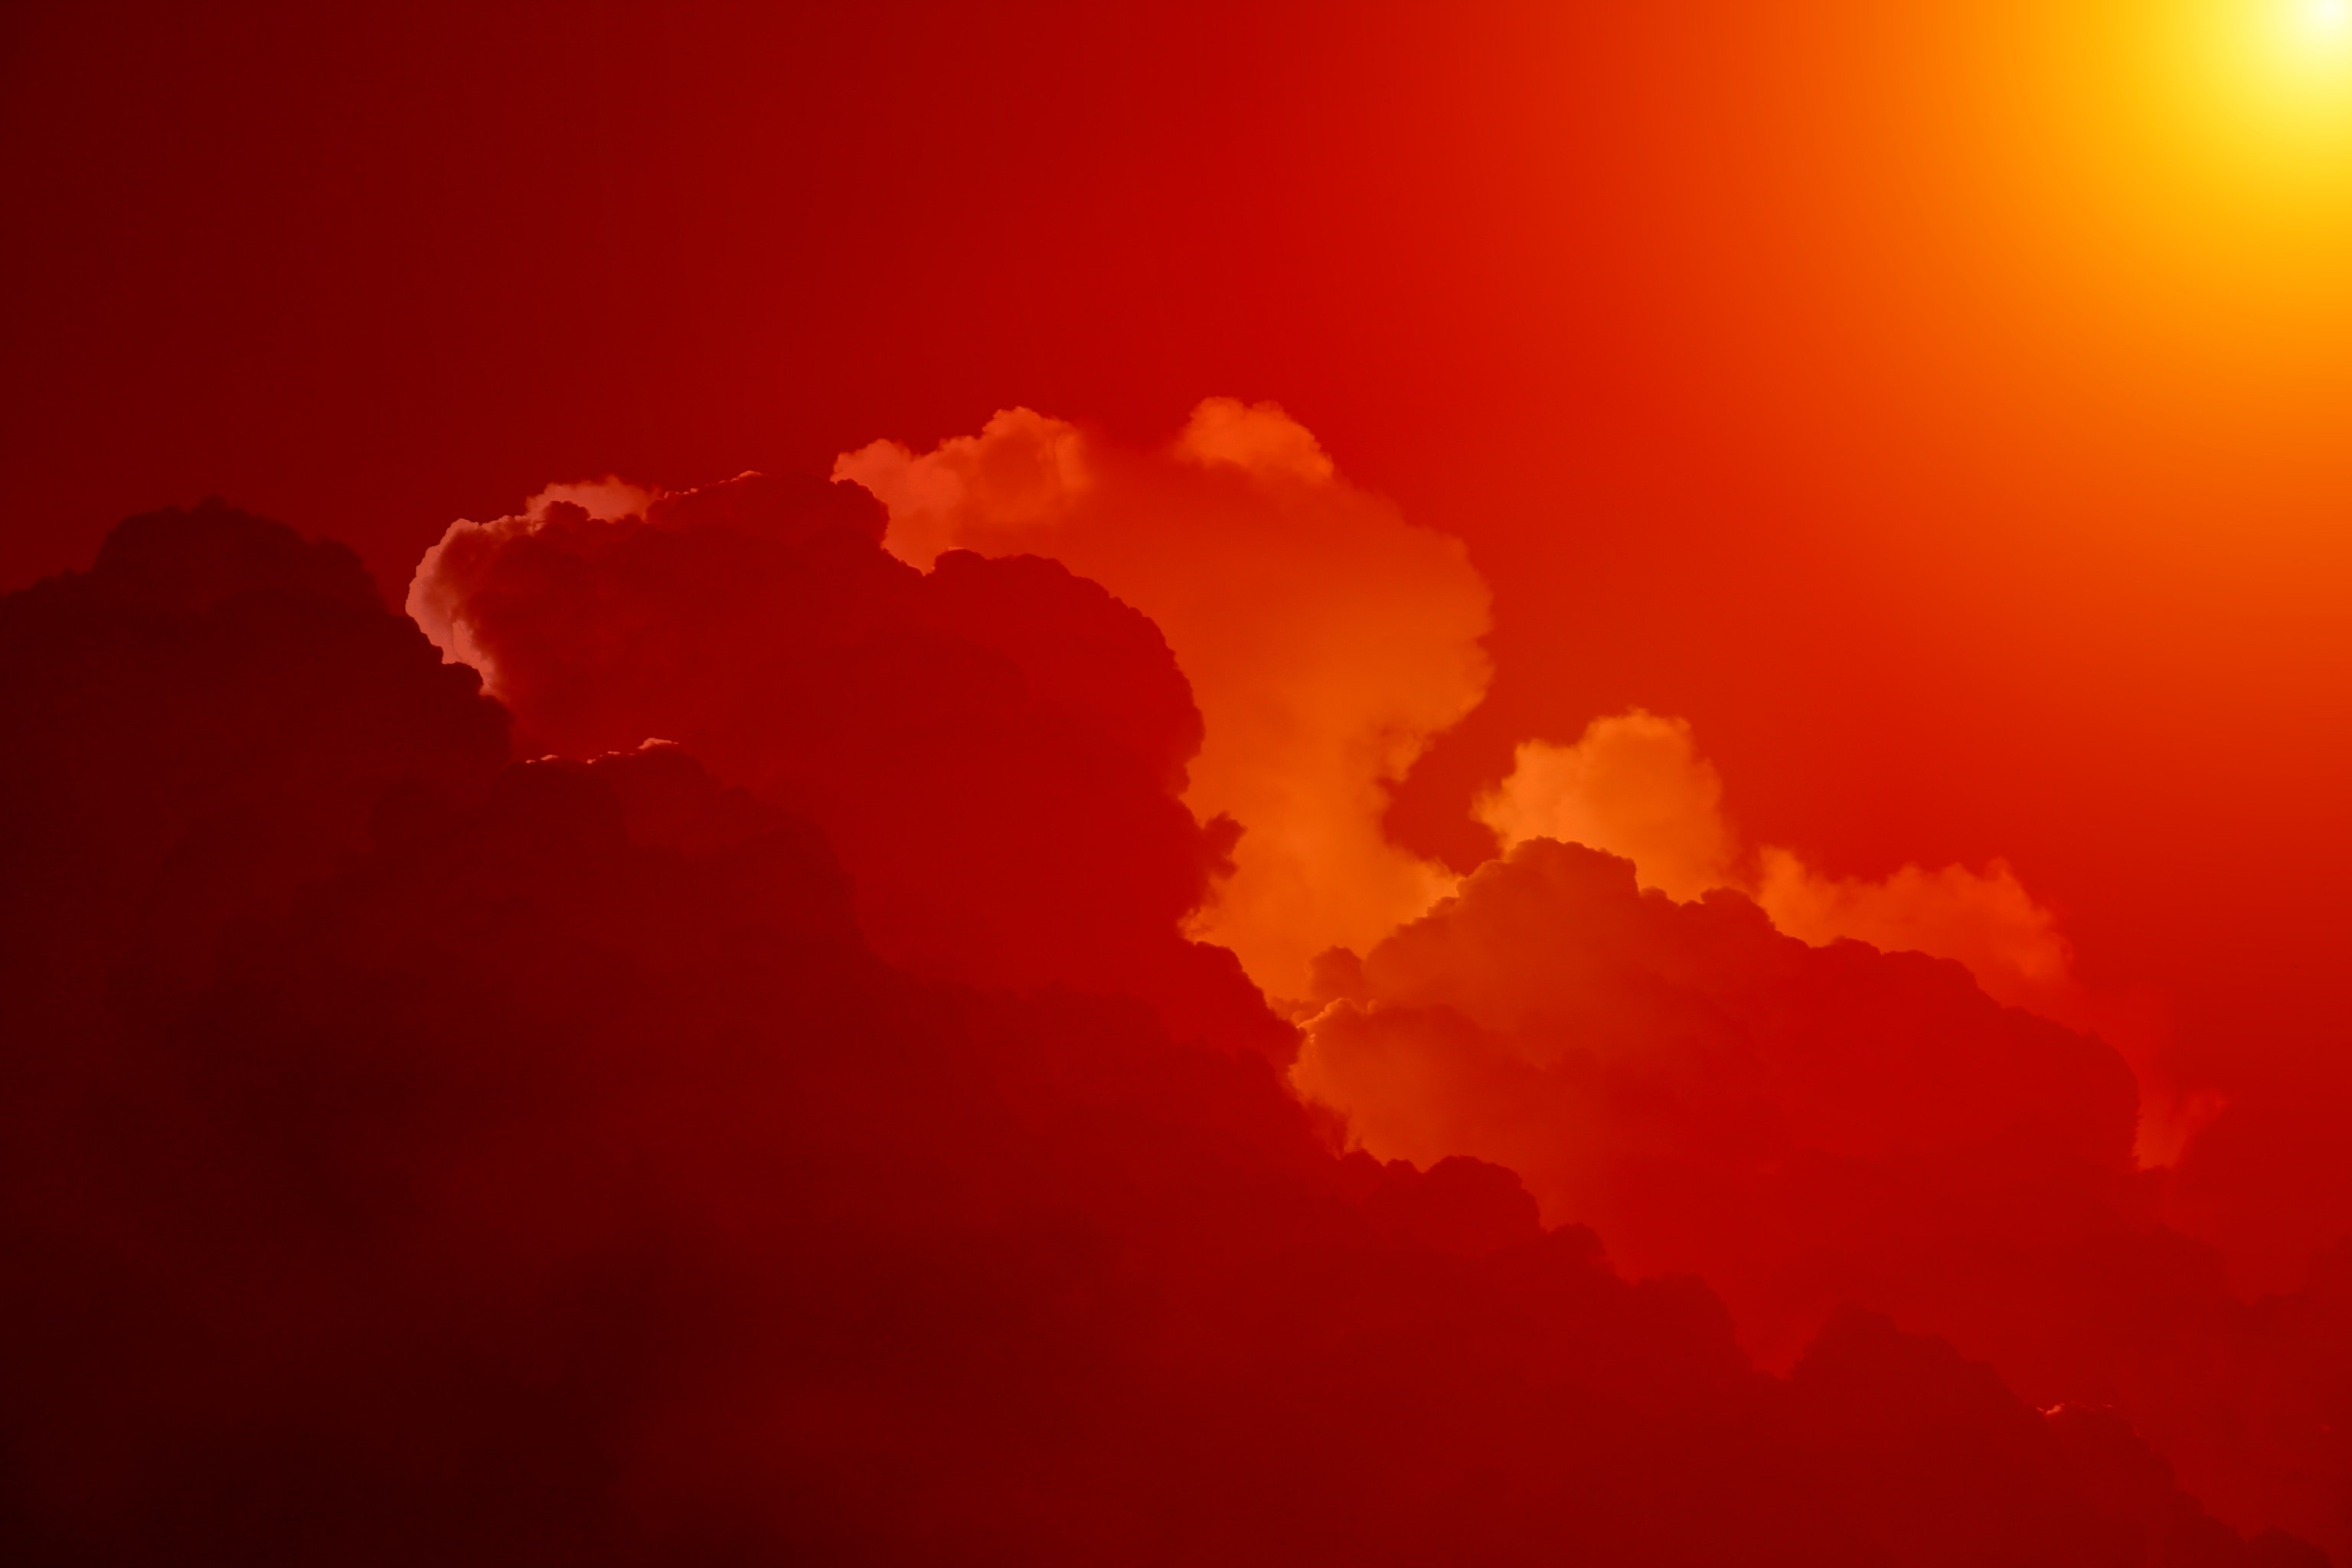 red clouds 1280×720 wallpaper. red clouds